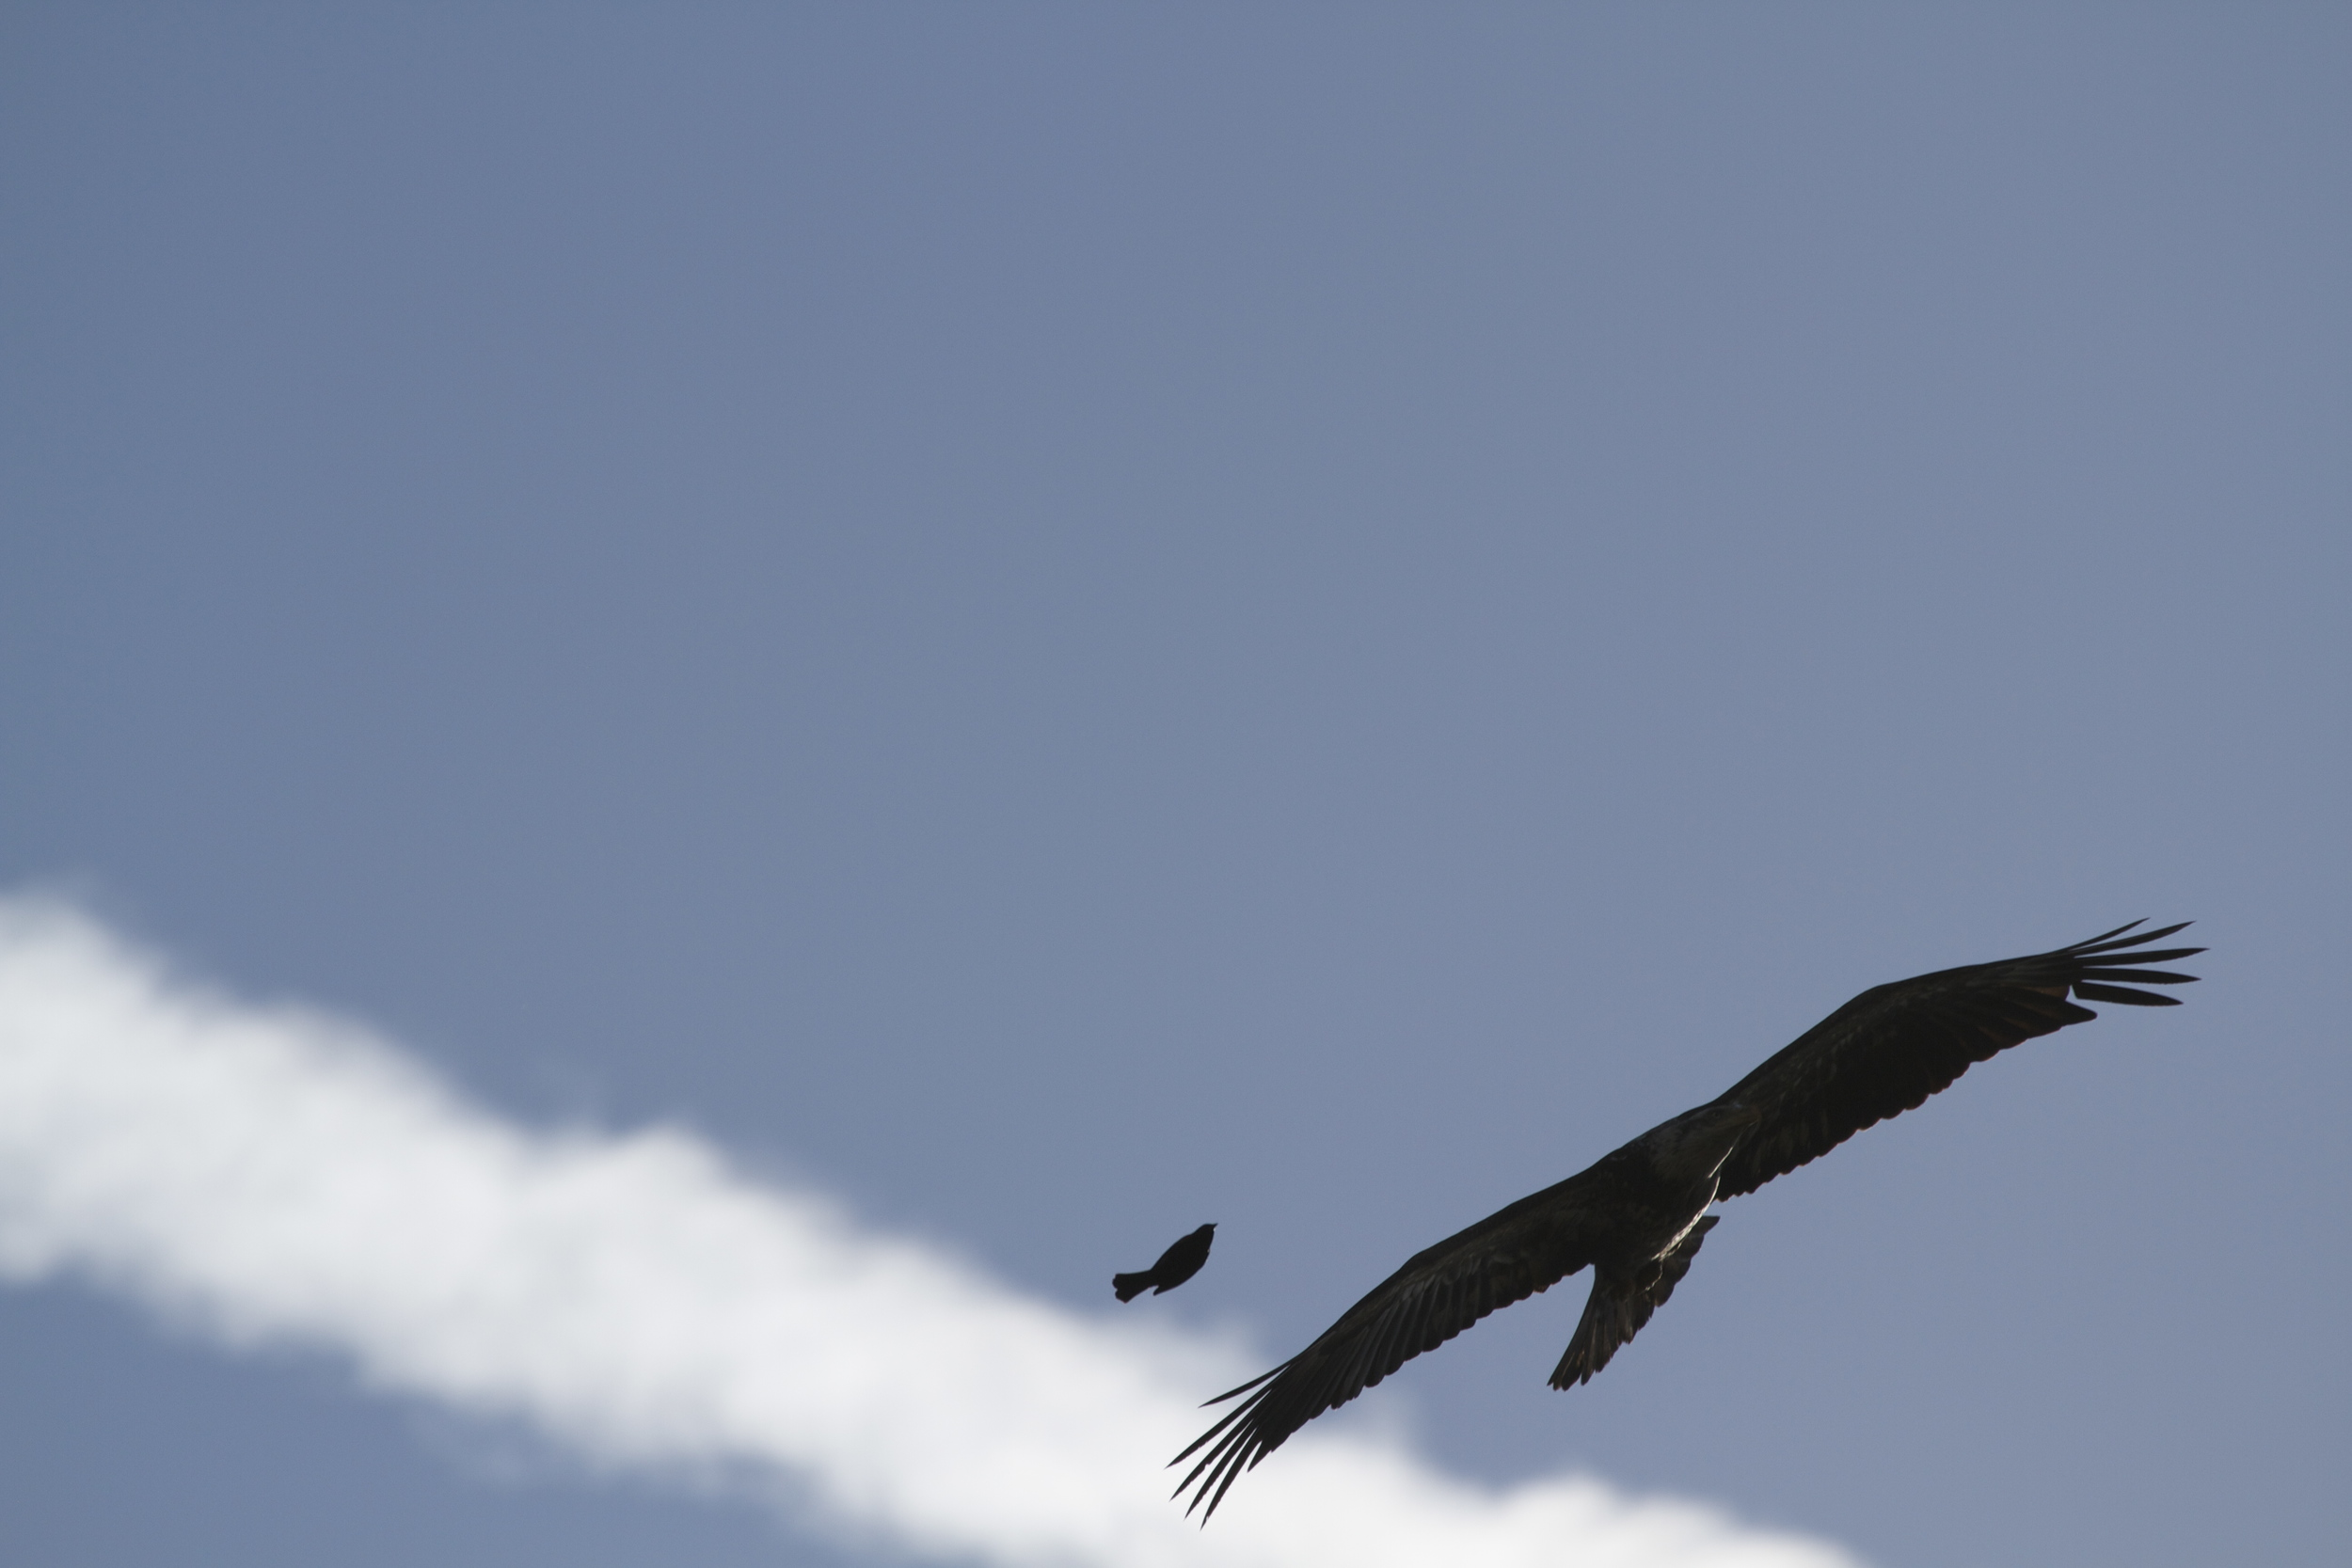 A very brave (or foolhardy)  Red Winged Blackbird buzzes the eagle.